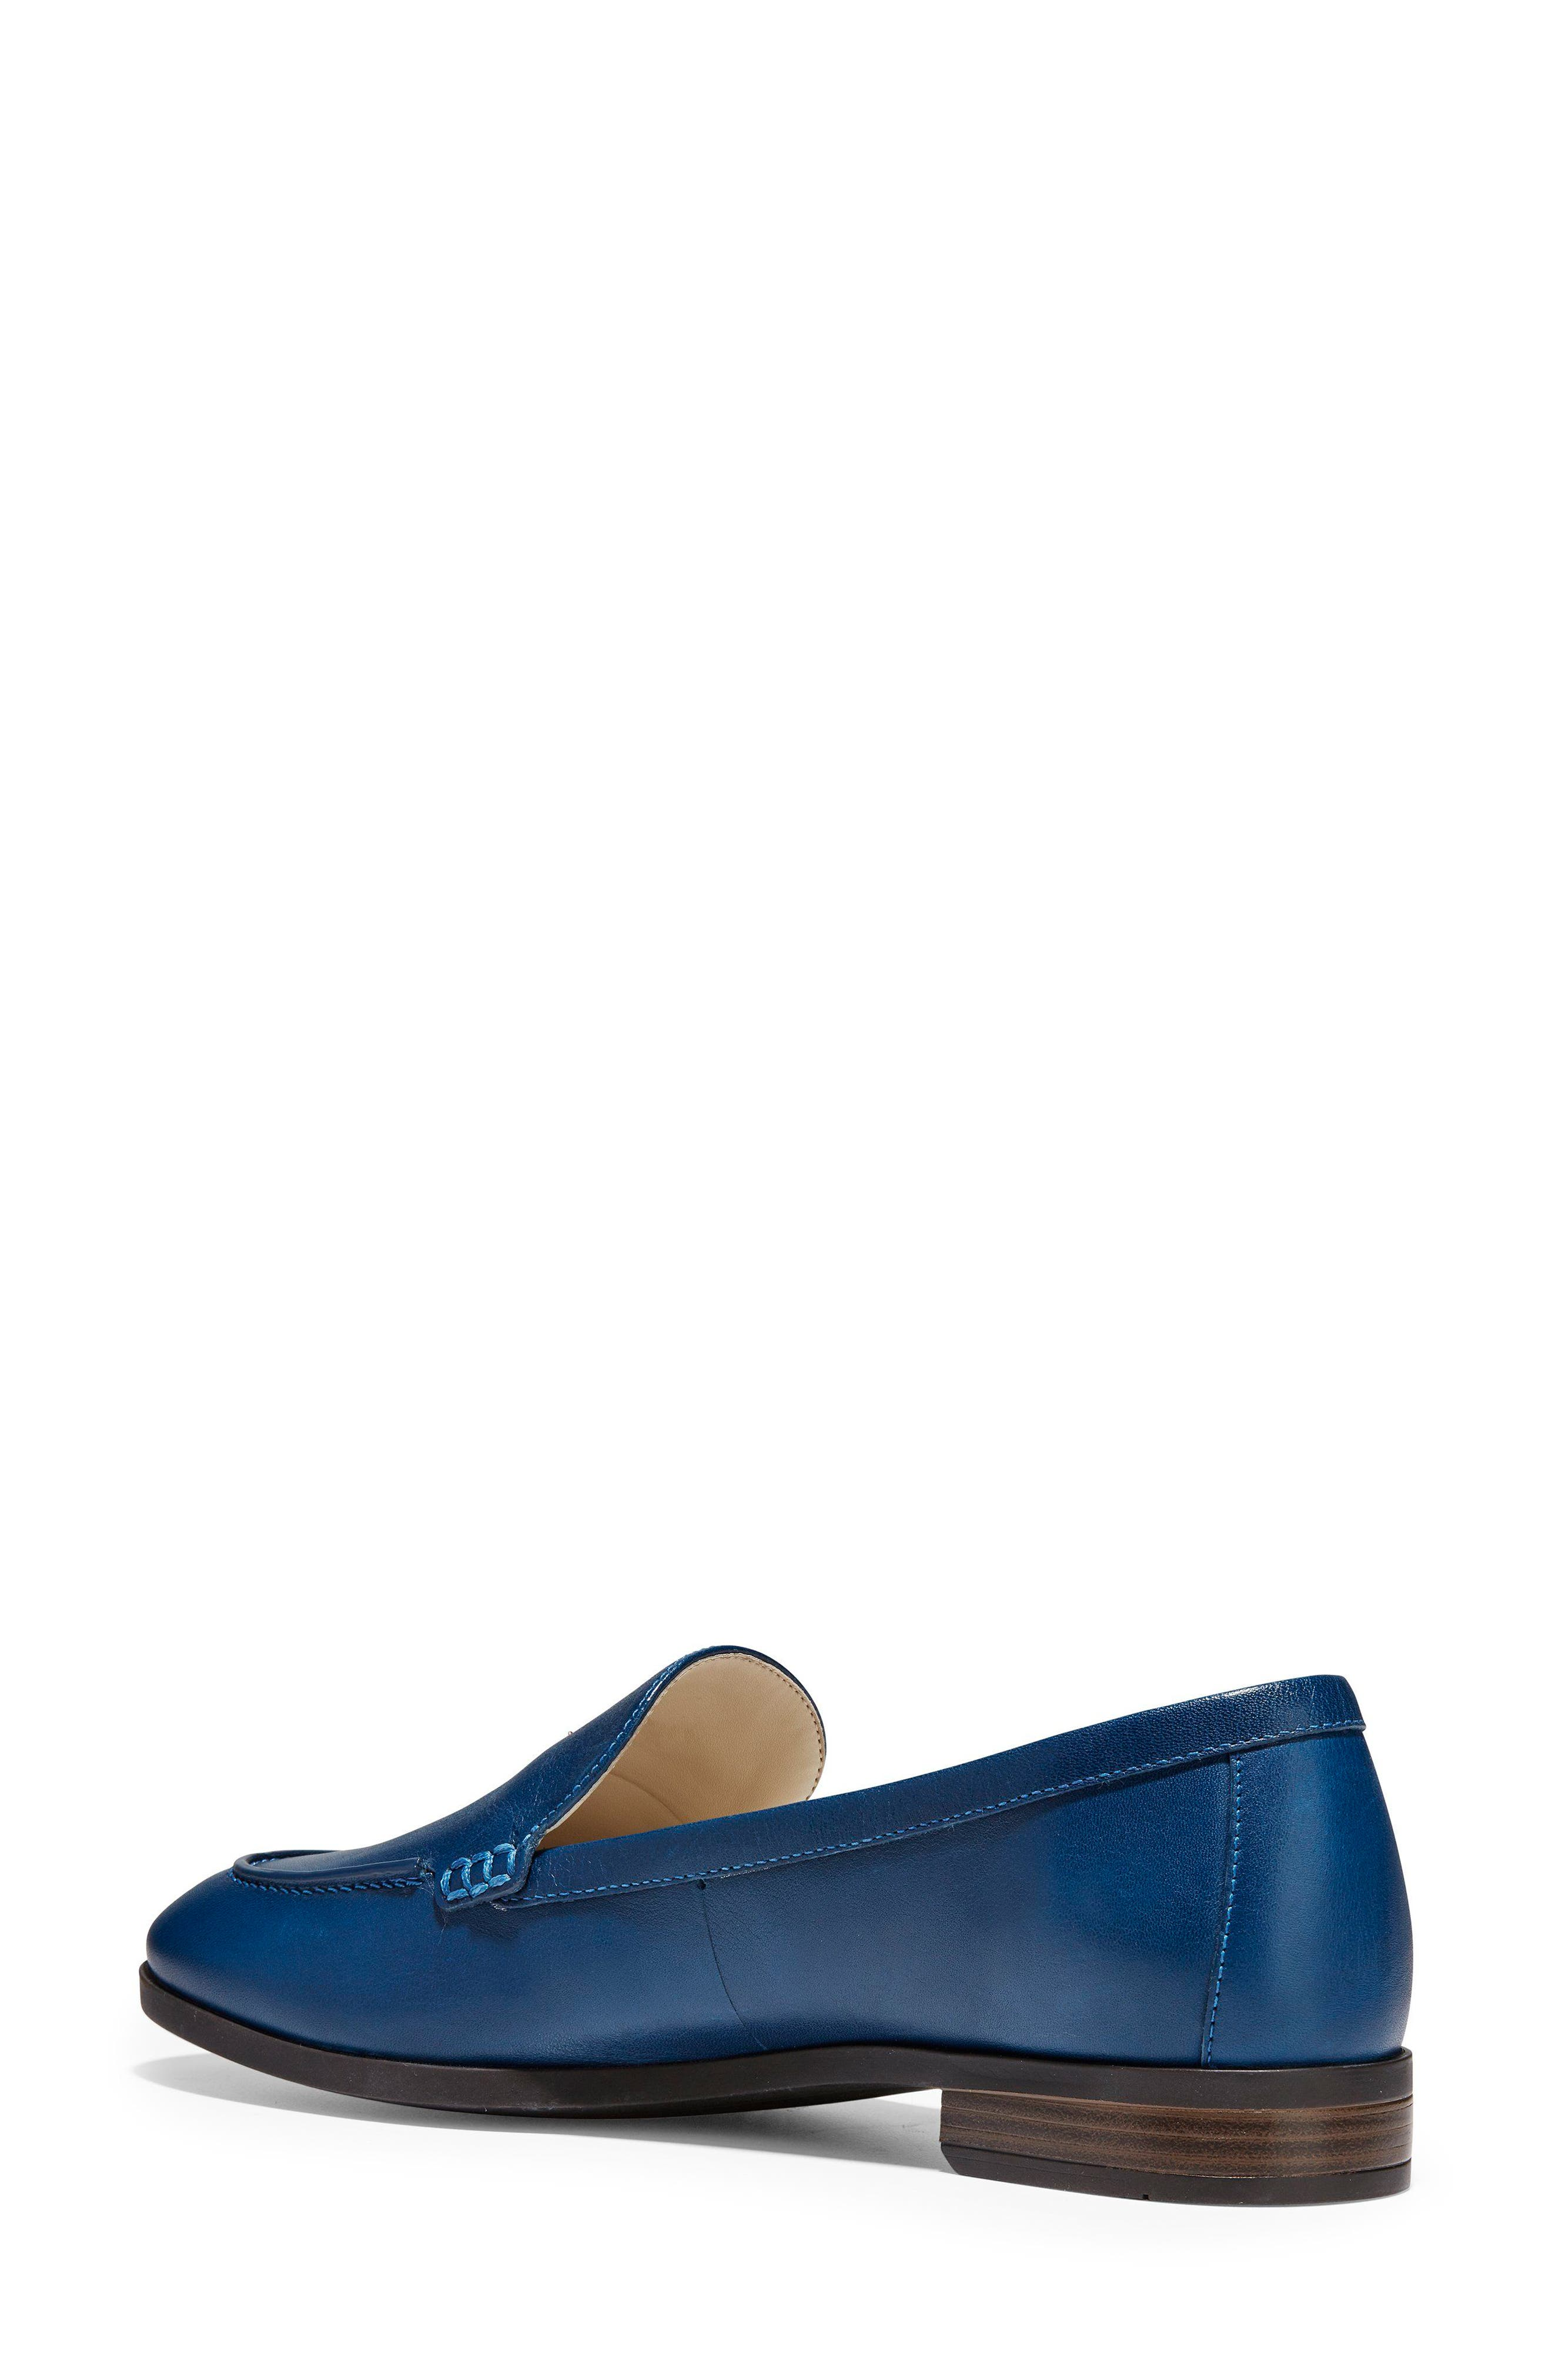 Pinch Lobster Loafer,                             Alternate thumbnail 9, color,